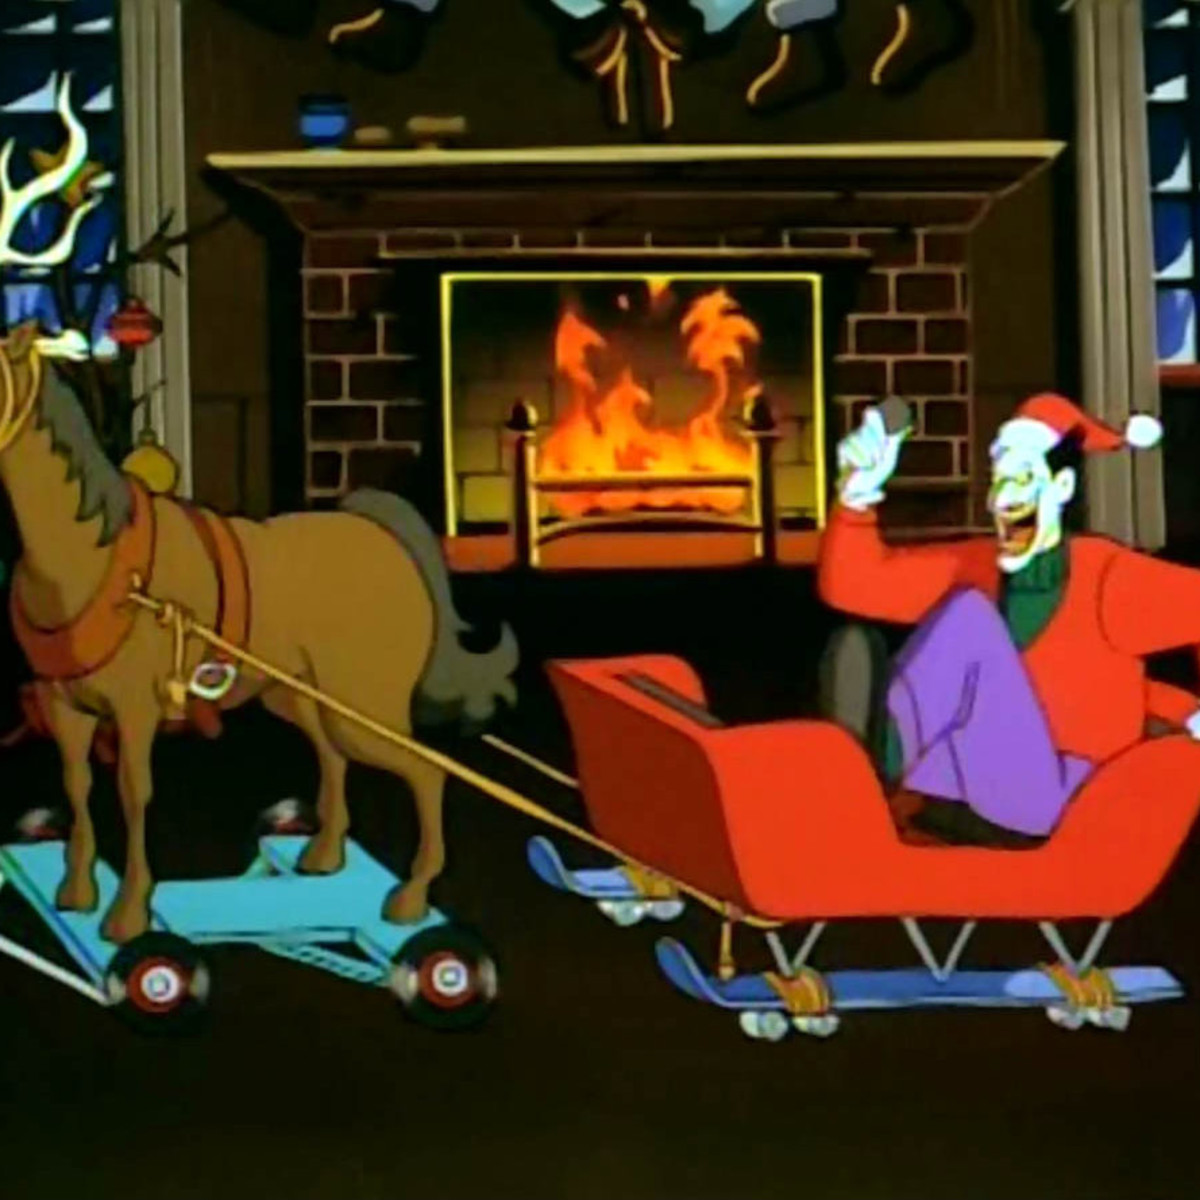 The Joker from Batman: The Animated Series in a sleigh with reindeer